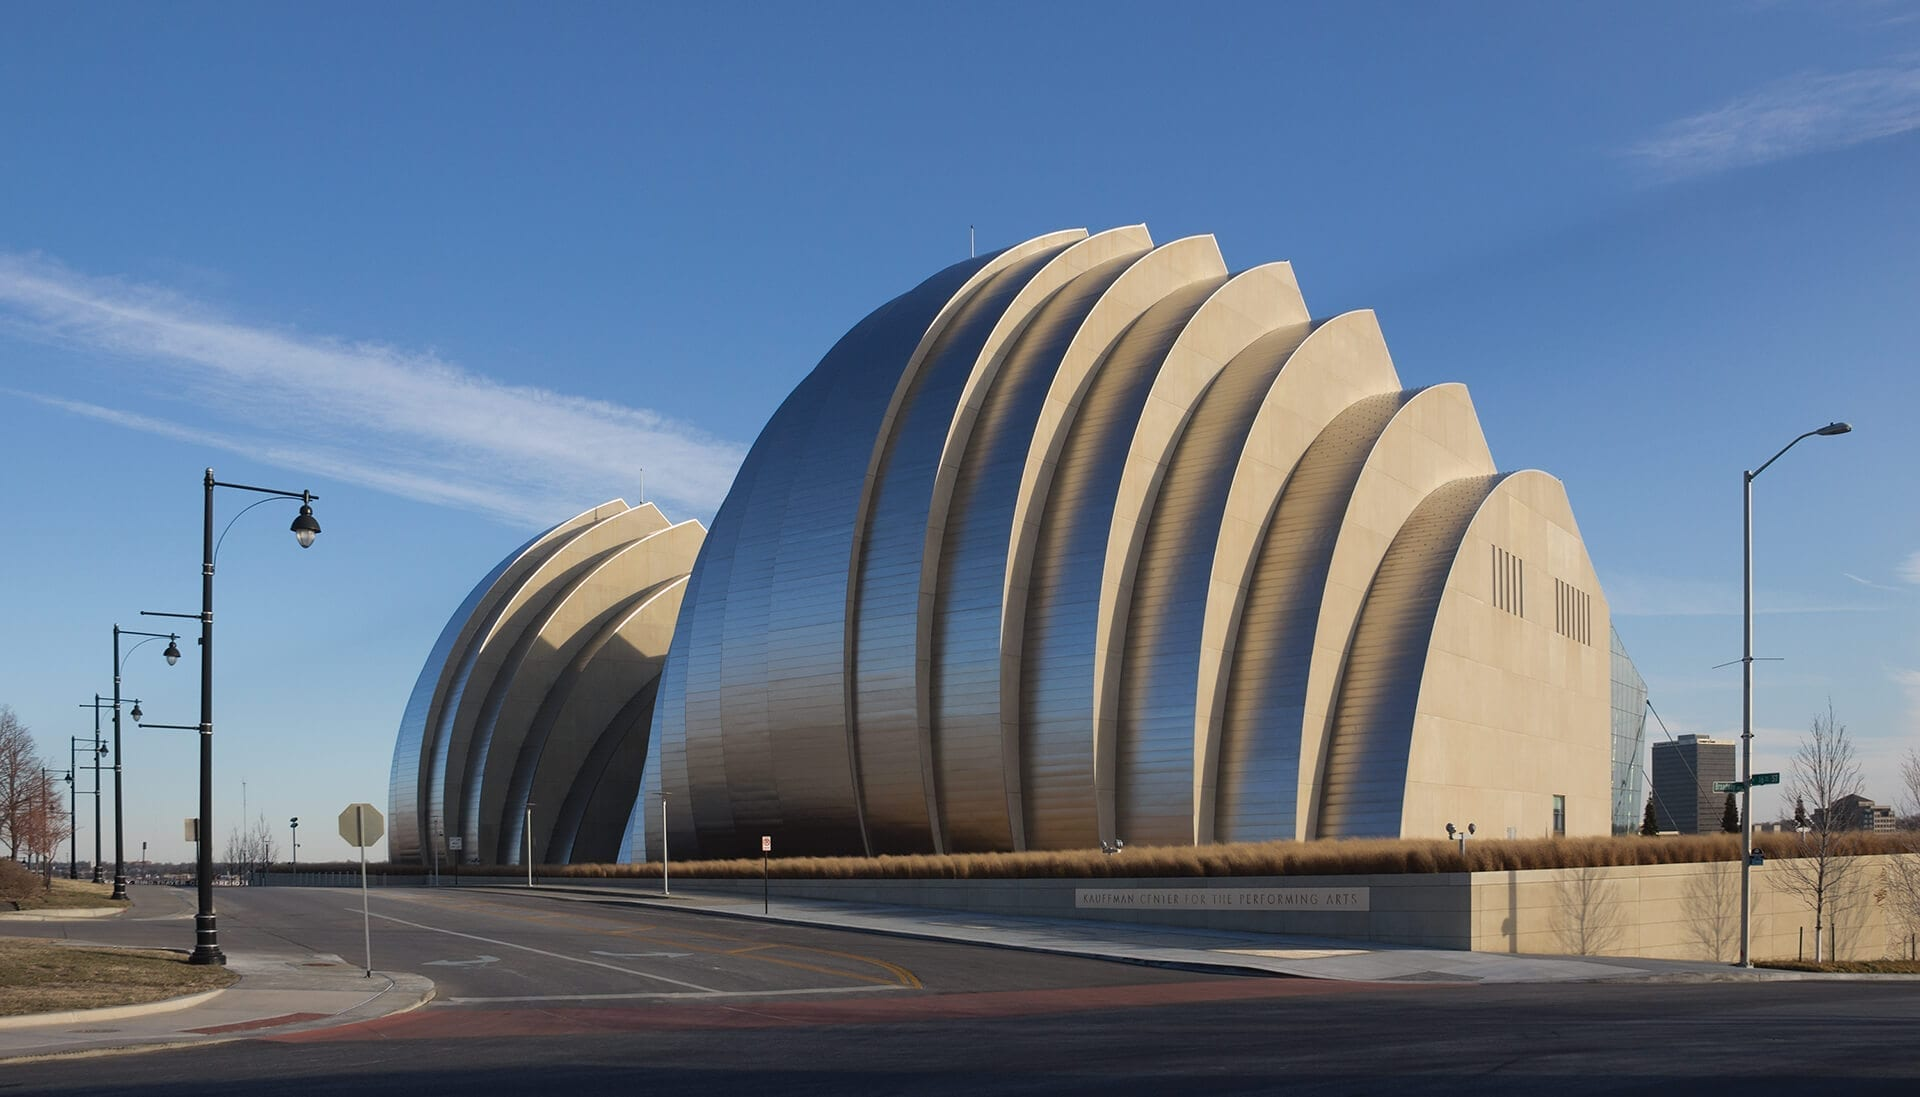 Kansas City's Kauffman Performing Arts Center uses ZEPPS for its curved facade and roof.